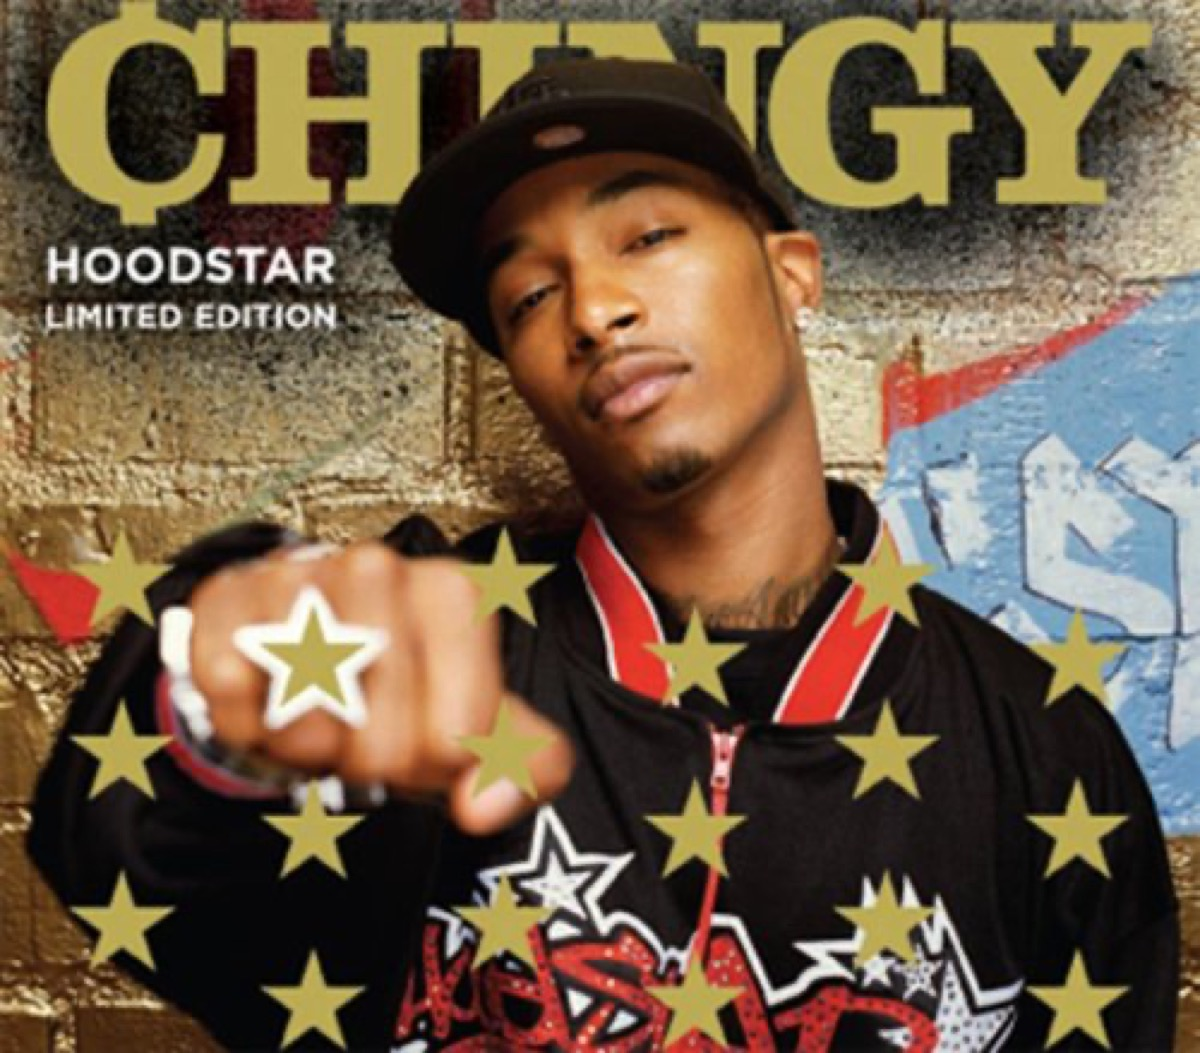 """The album cover of """"Hoodstar"""" by Chingy"""